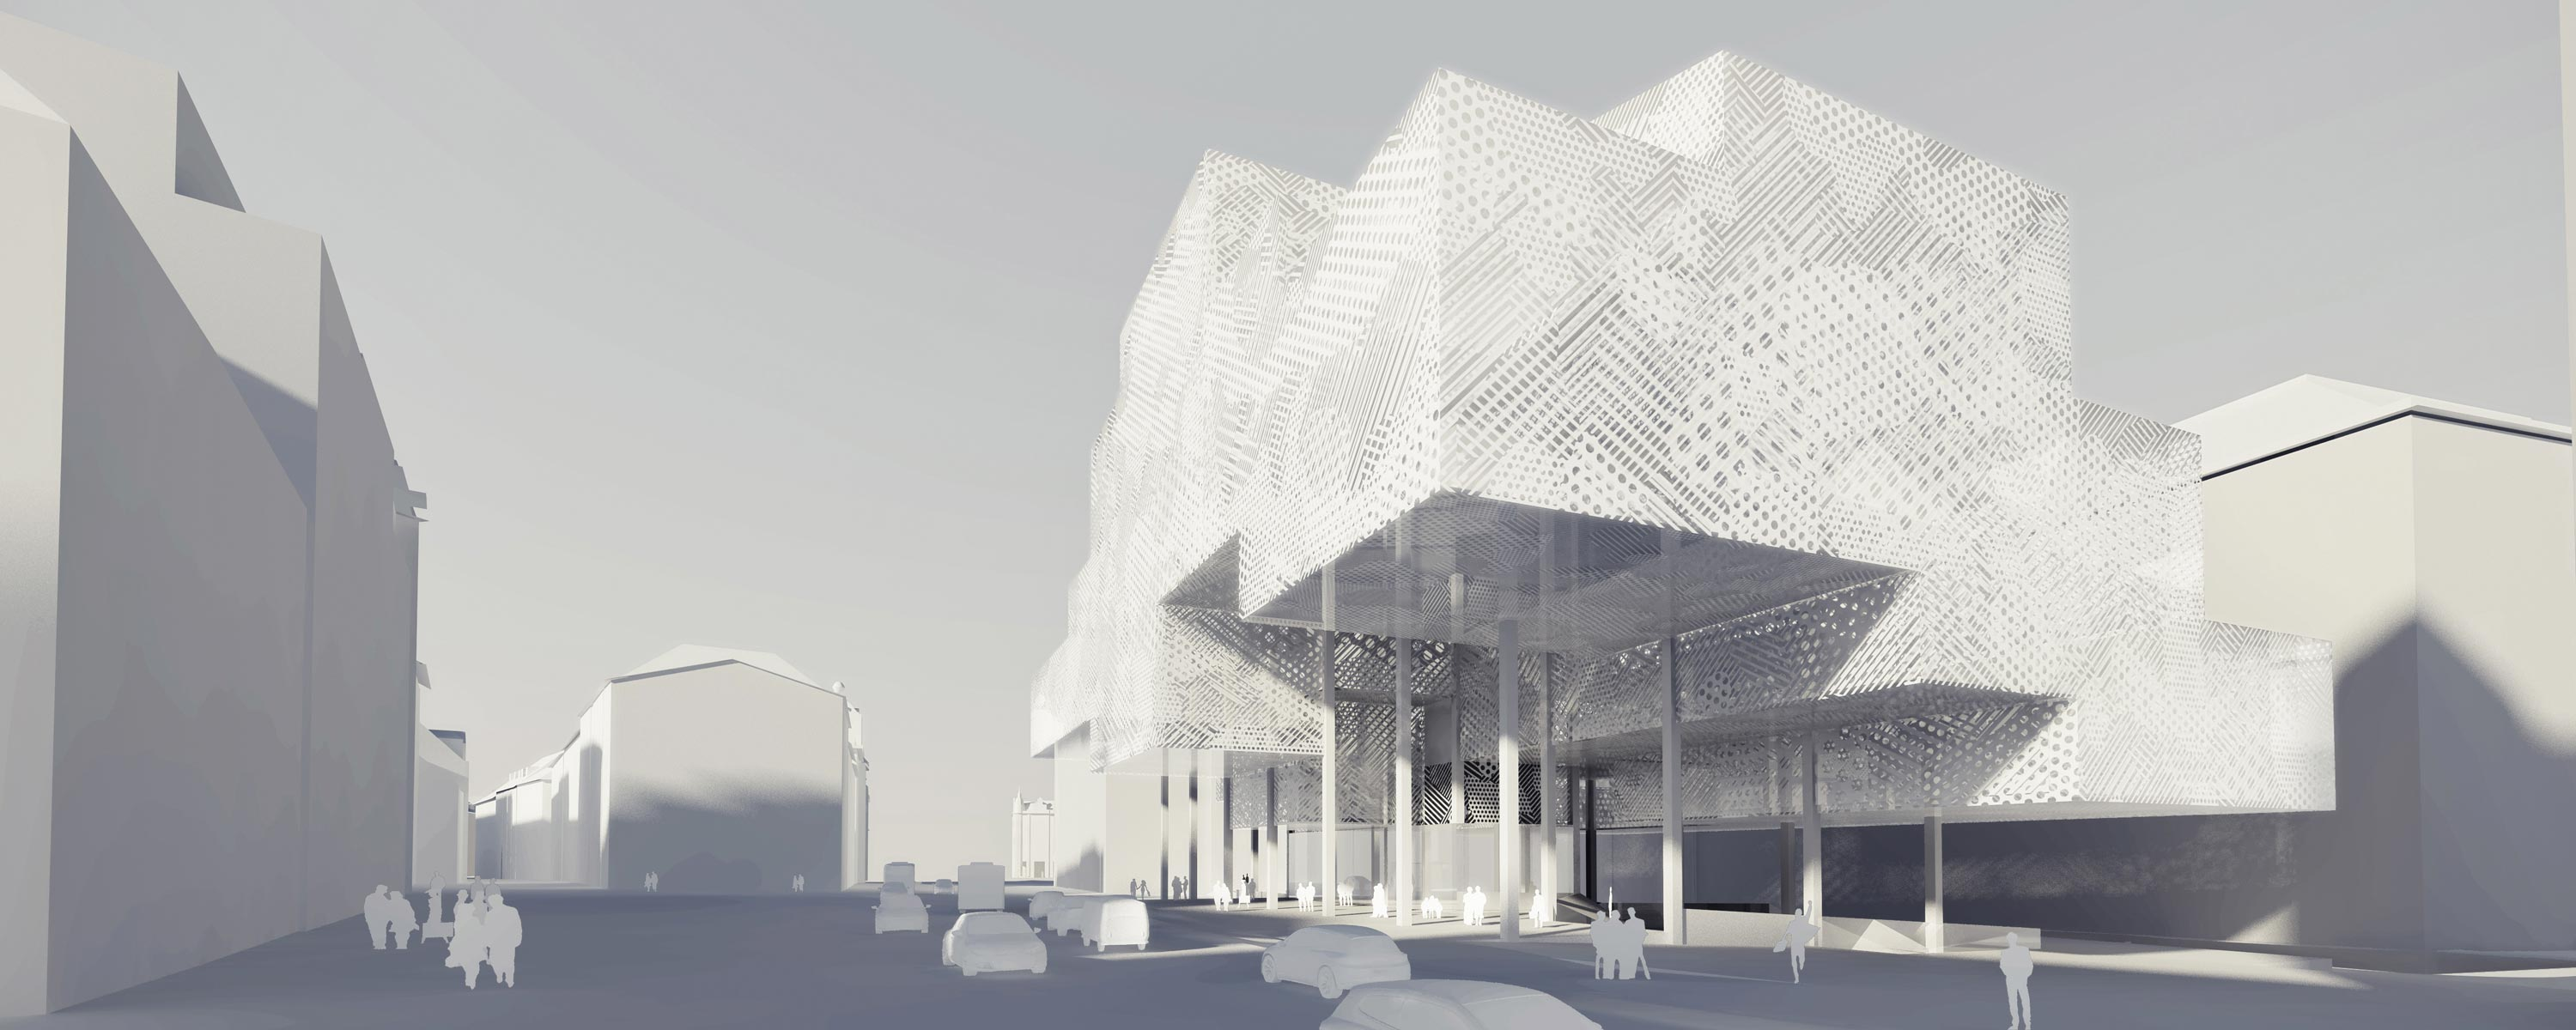 ppag_rathaustrasse_render_outside_view6